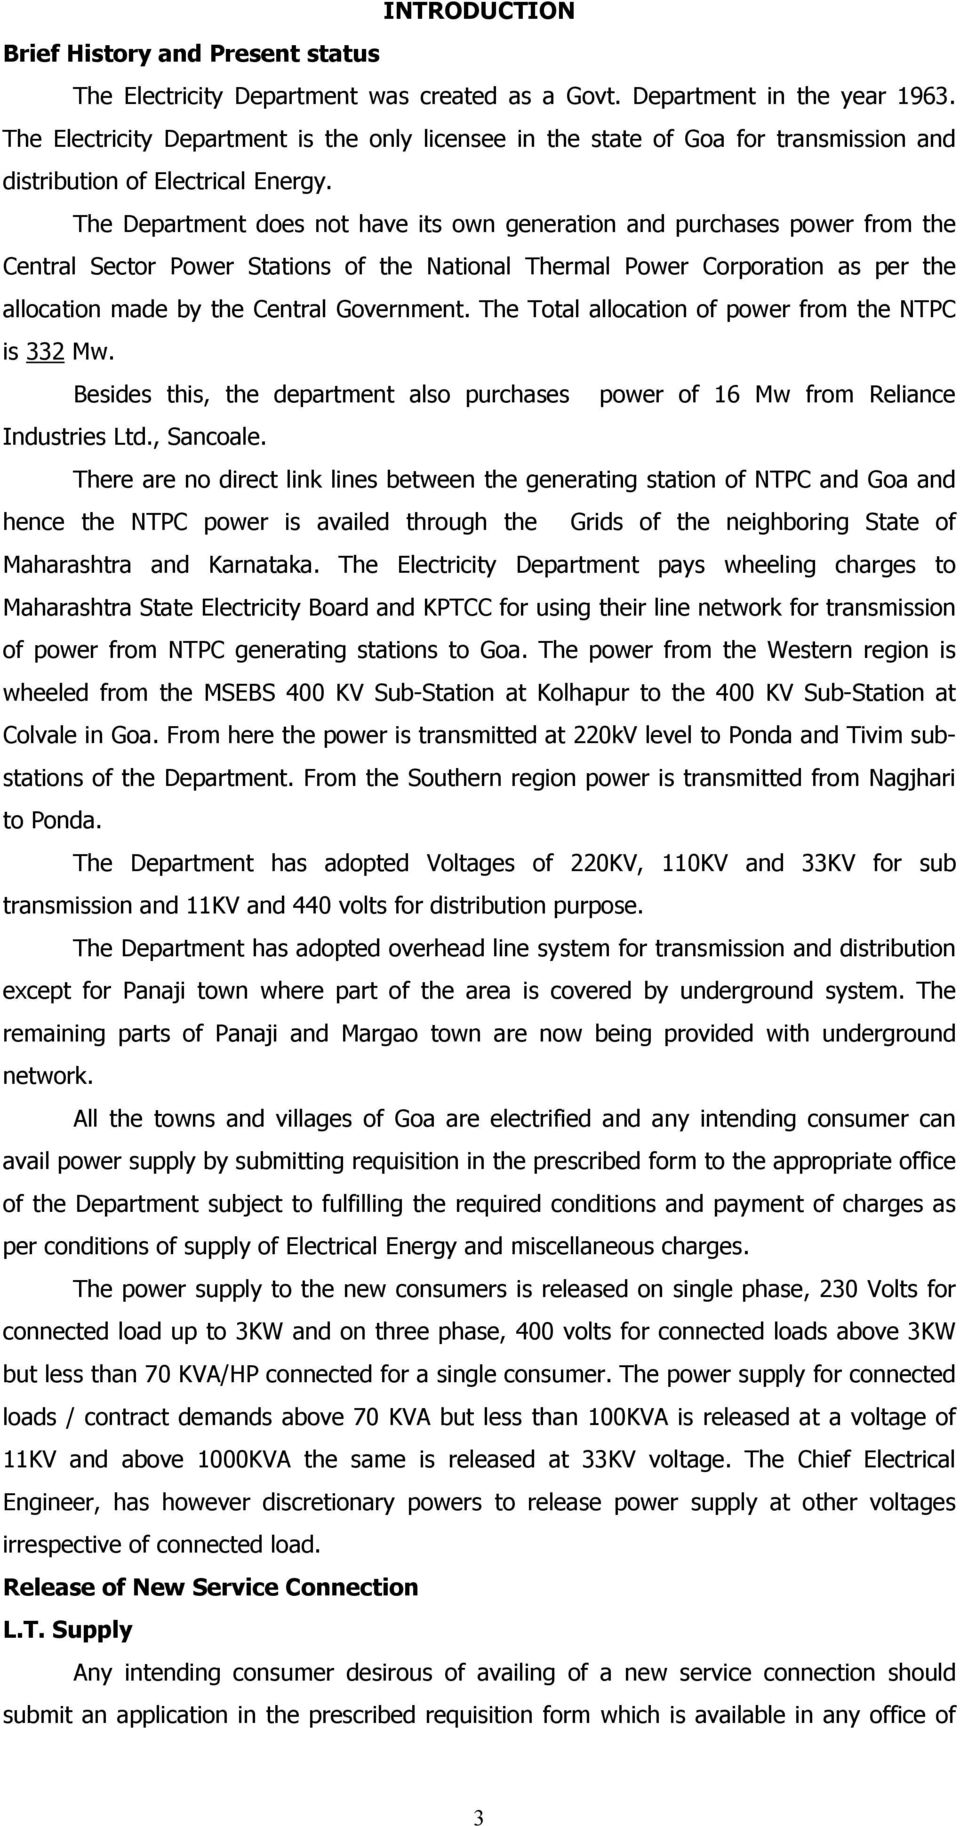 The Department does not have its own generation and purchases power from the Central Sector Power Stations of the National Thermal Power Corporation as per the allocation made by the Central